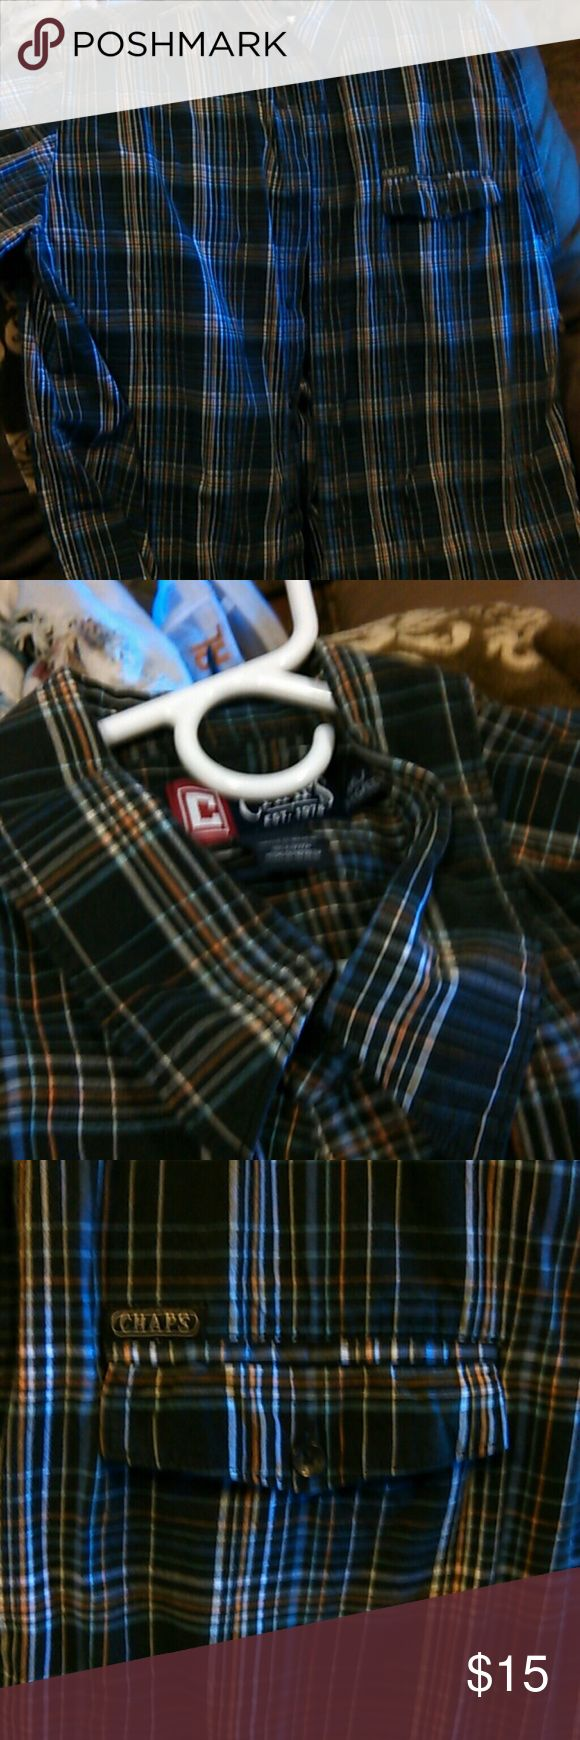 Mens chaps dress shirt xxl Striped has front pocket short sleeves great condition Chaps Shirts Dress Shirts